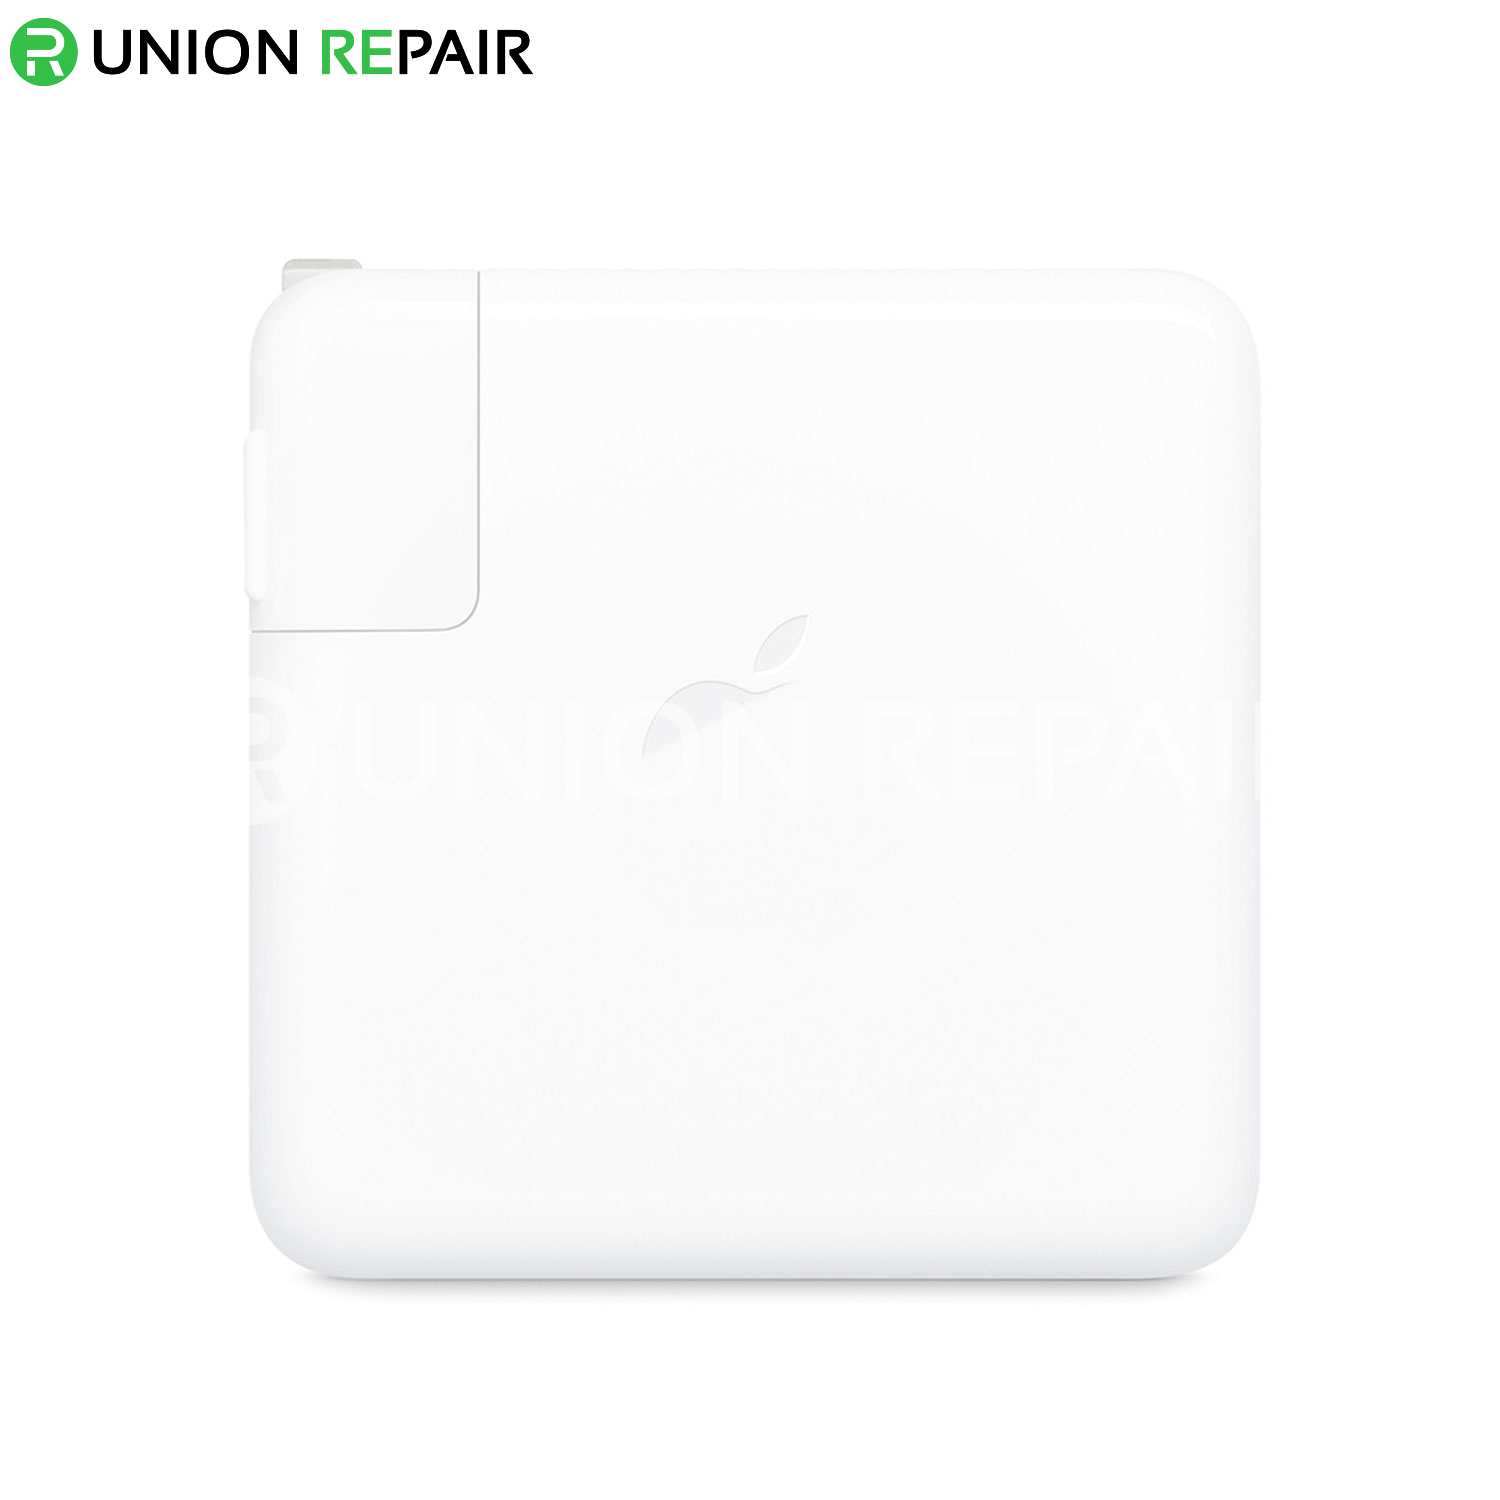 96W USB-C Power Adapter for MacBook Pro 16-inch